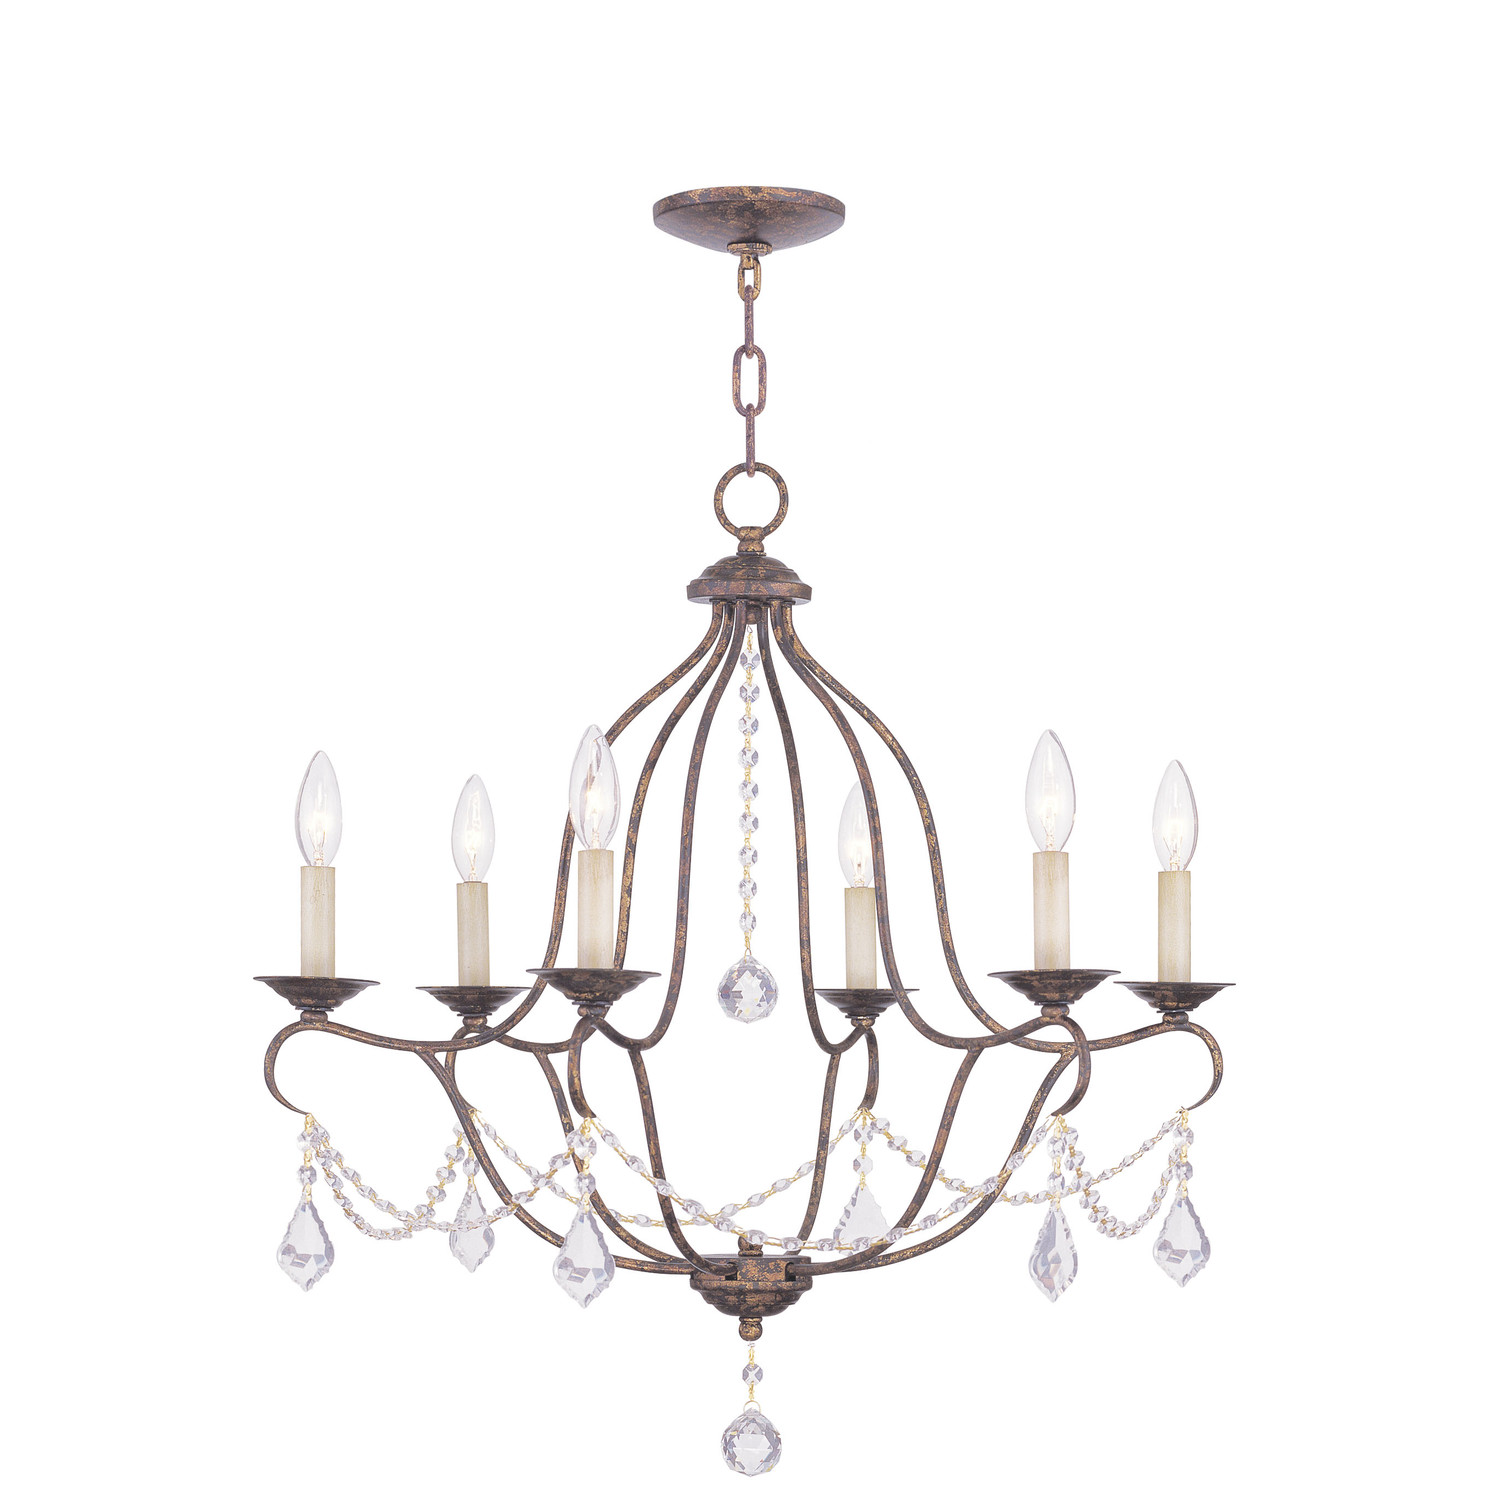 Chic Livex Lighting Chesterfield 6 Light Chandelier For Home Lighting Ideas